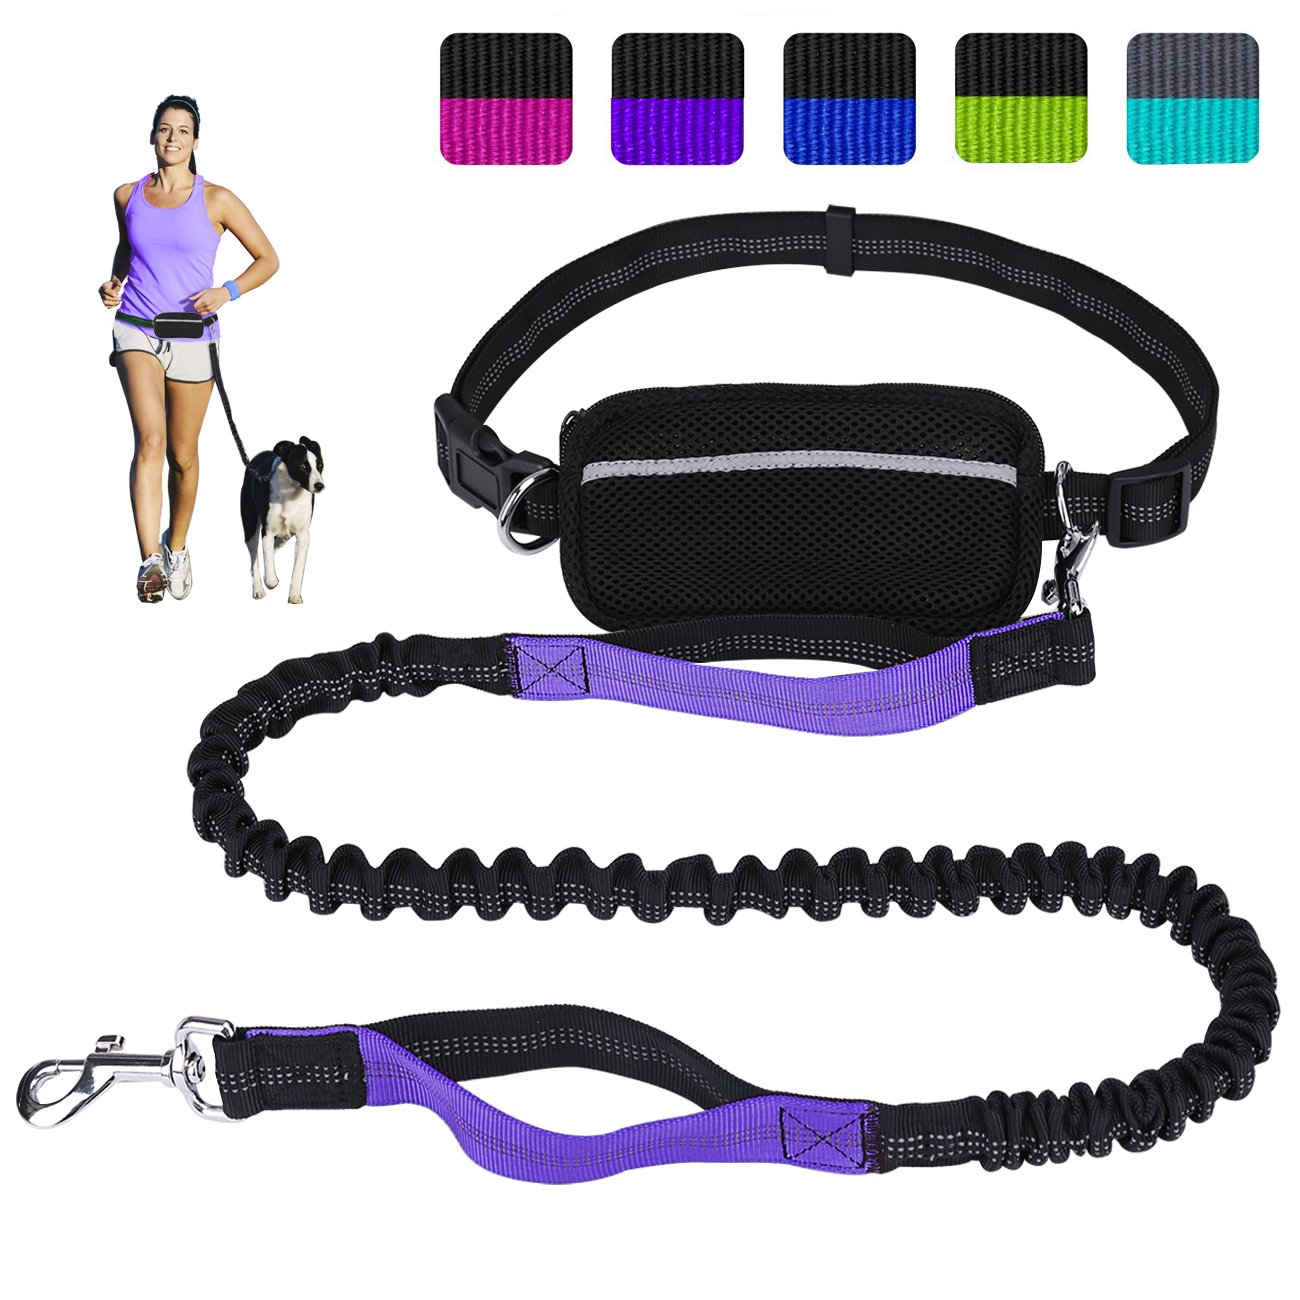 Black Purple Hands Free Dog Leash for Running Walking Training Hiking, Dual-Handle Reflective Bungee, Poop Bag Dispenser Pouch, Adjustable Waist Belt, Shock Absorbing, Ideal for Medium to Large Dogs (Black Purple)